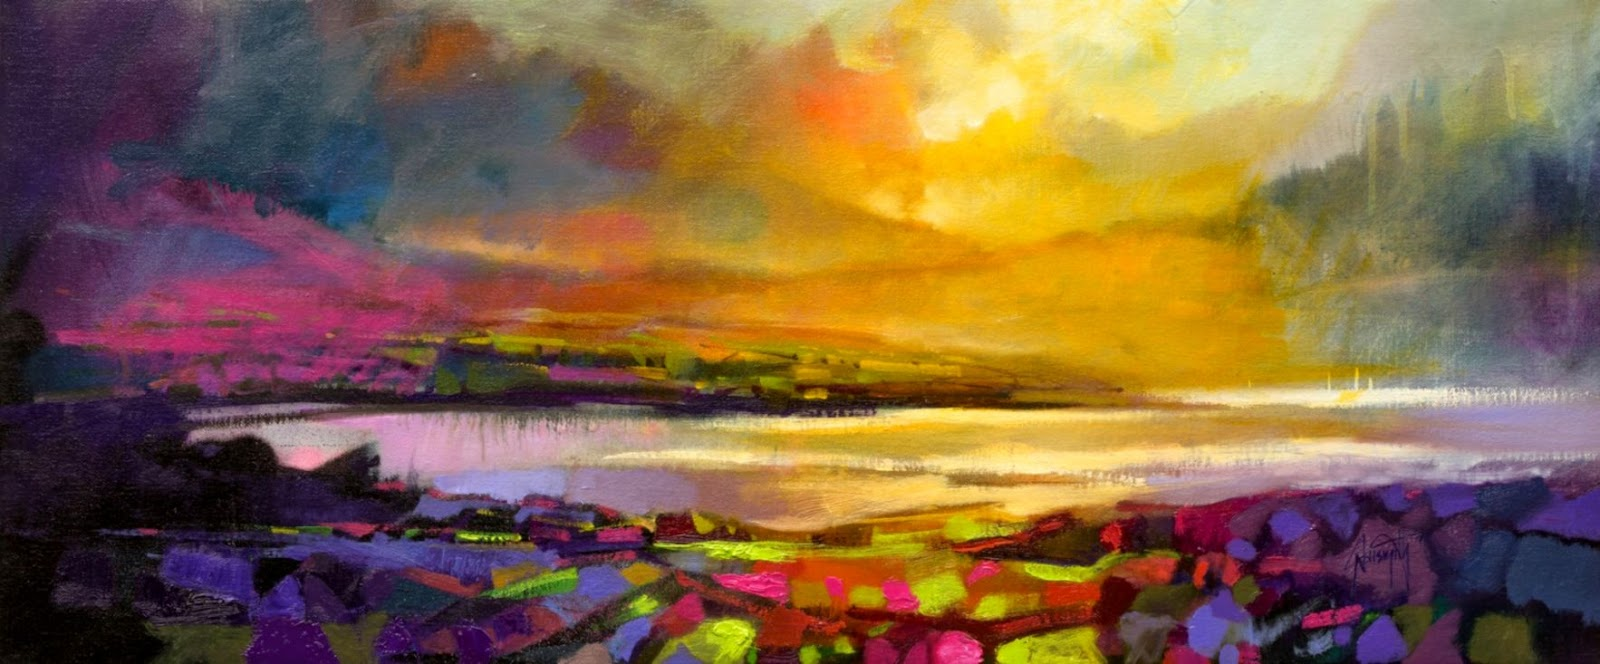 db061a5a7 Highland Heather semi abstract Scottish landscape painting